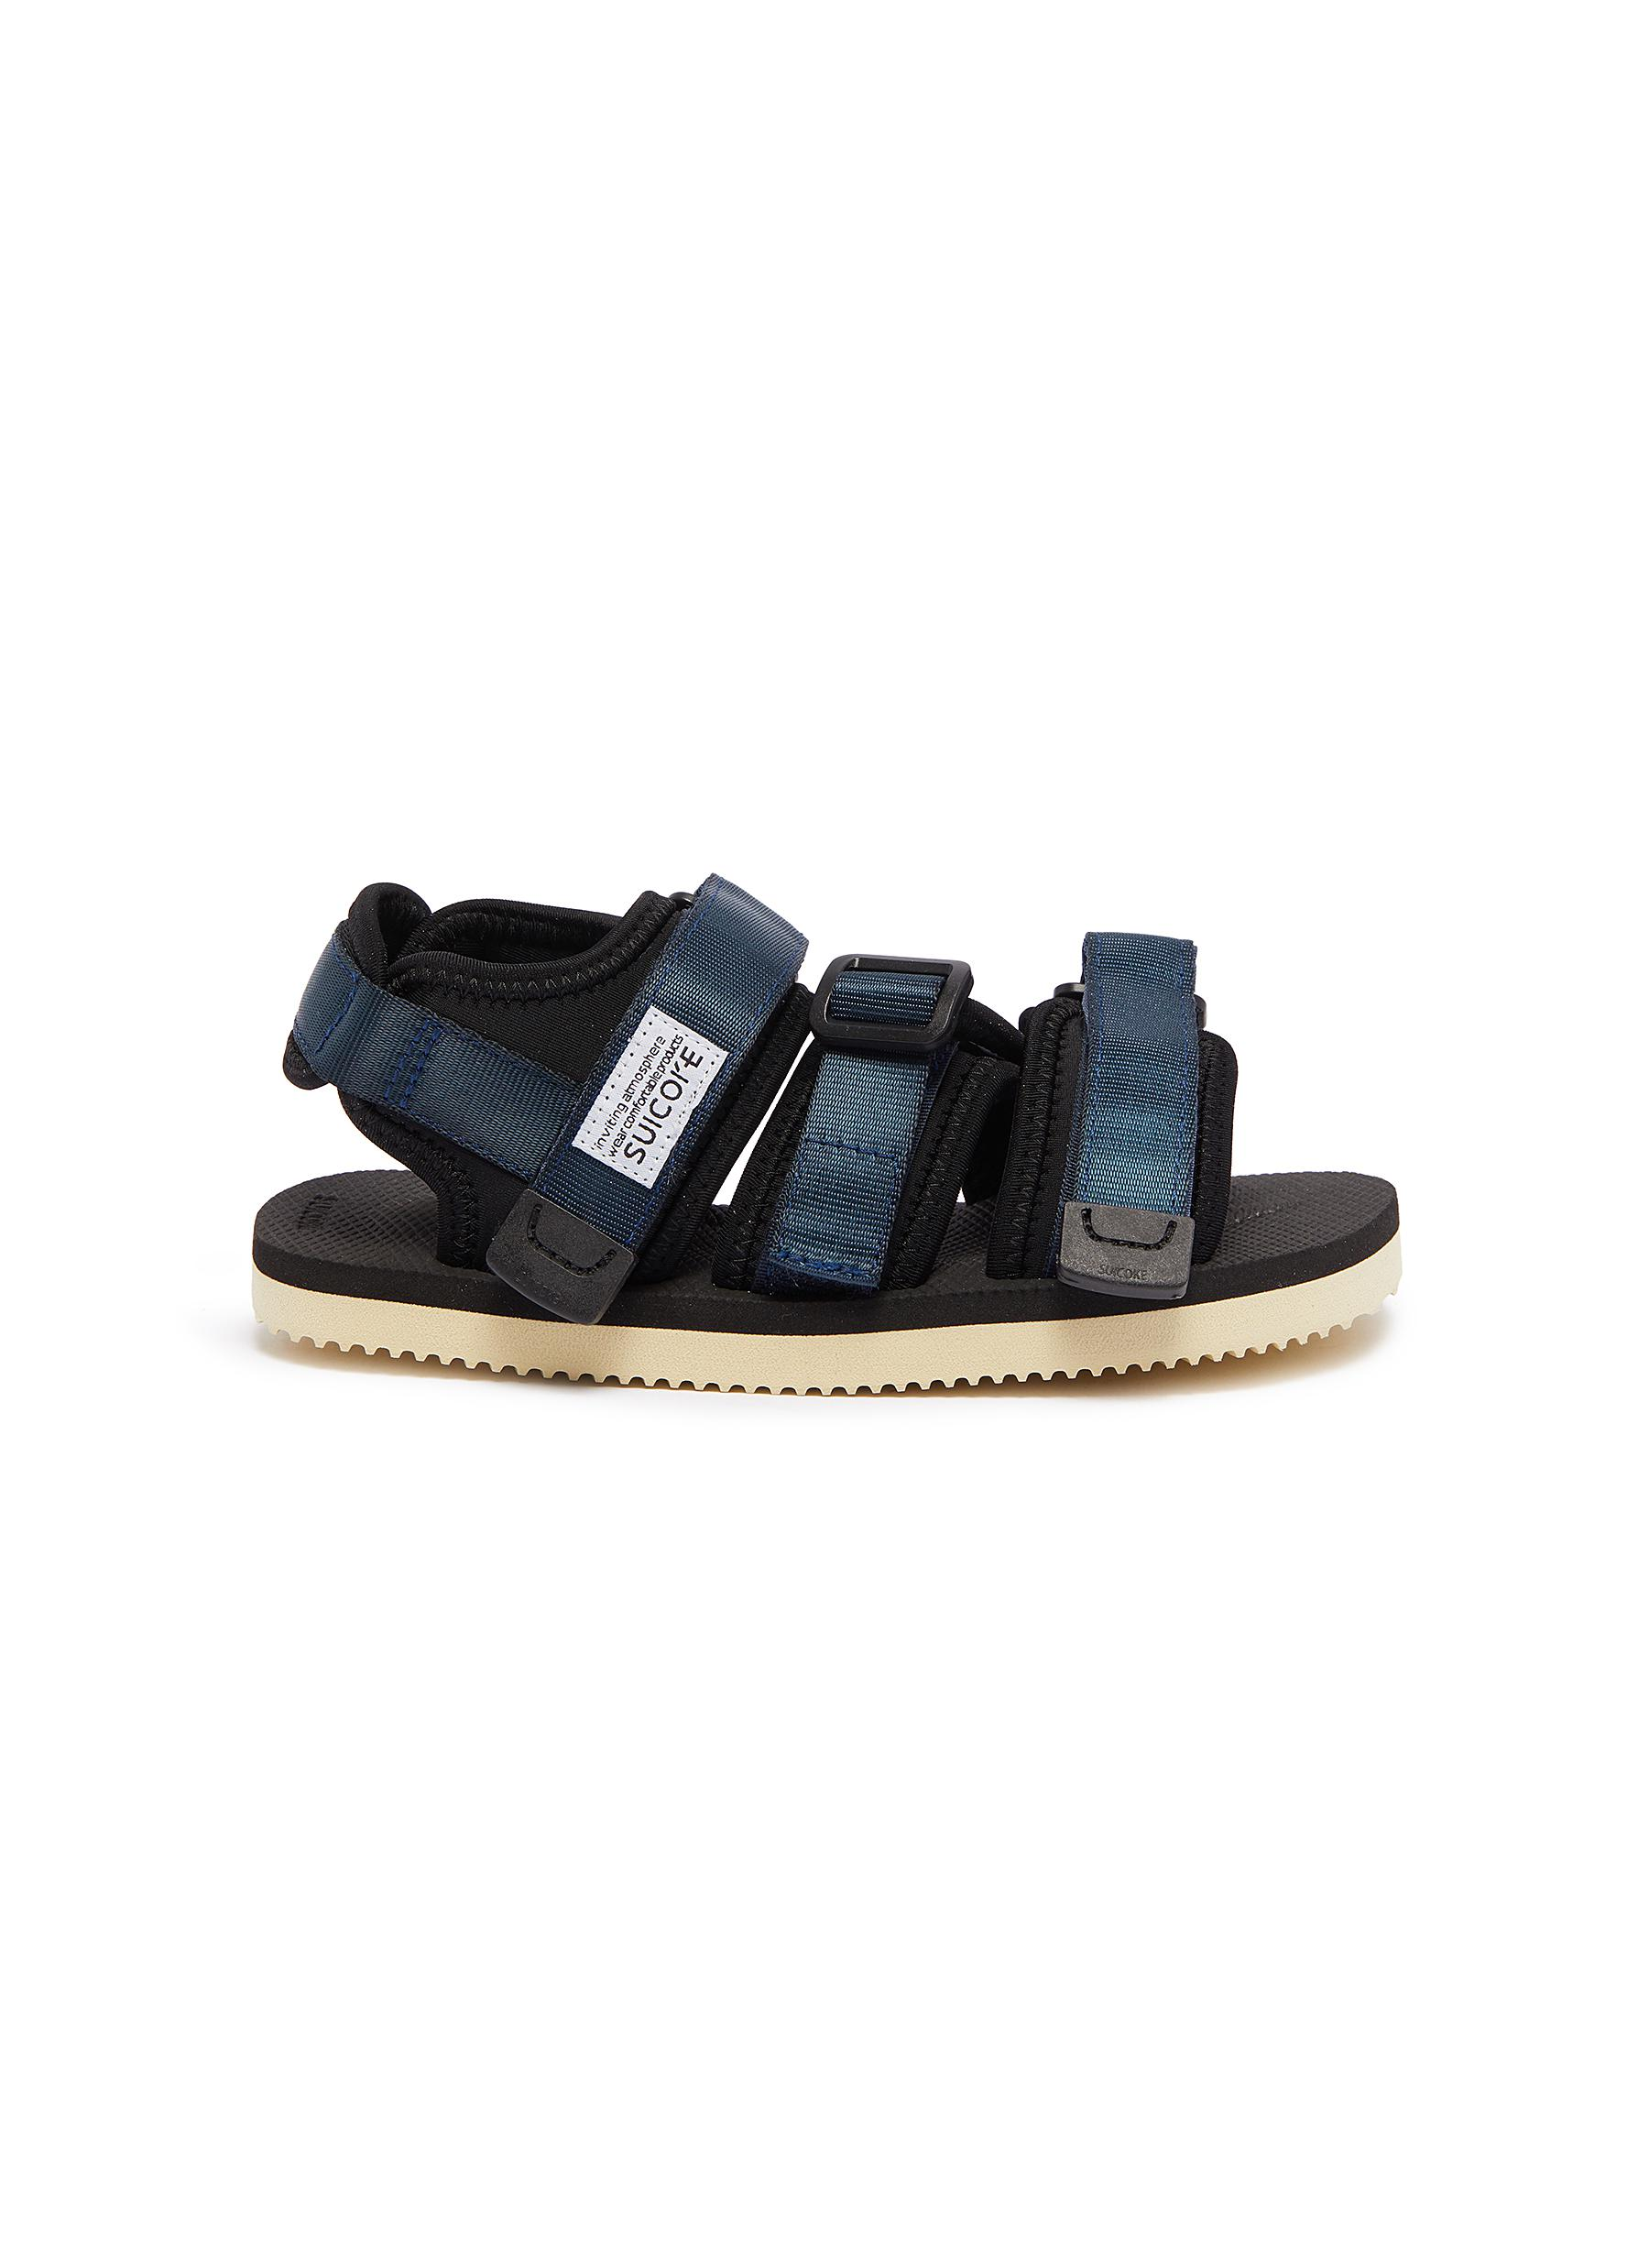 aae7536fb386 Main View - Click To Enlarge - SUICOKE -  KISEE-Kids  strappy sandals